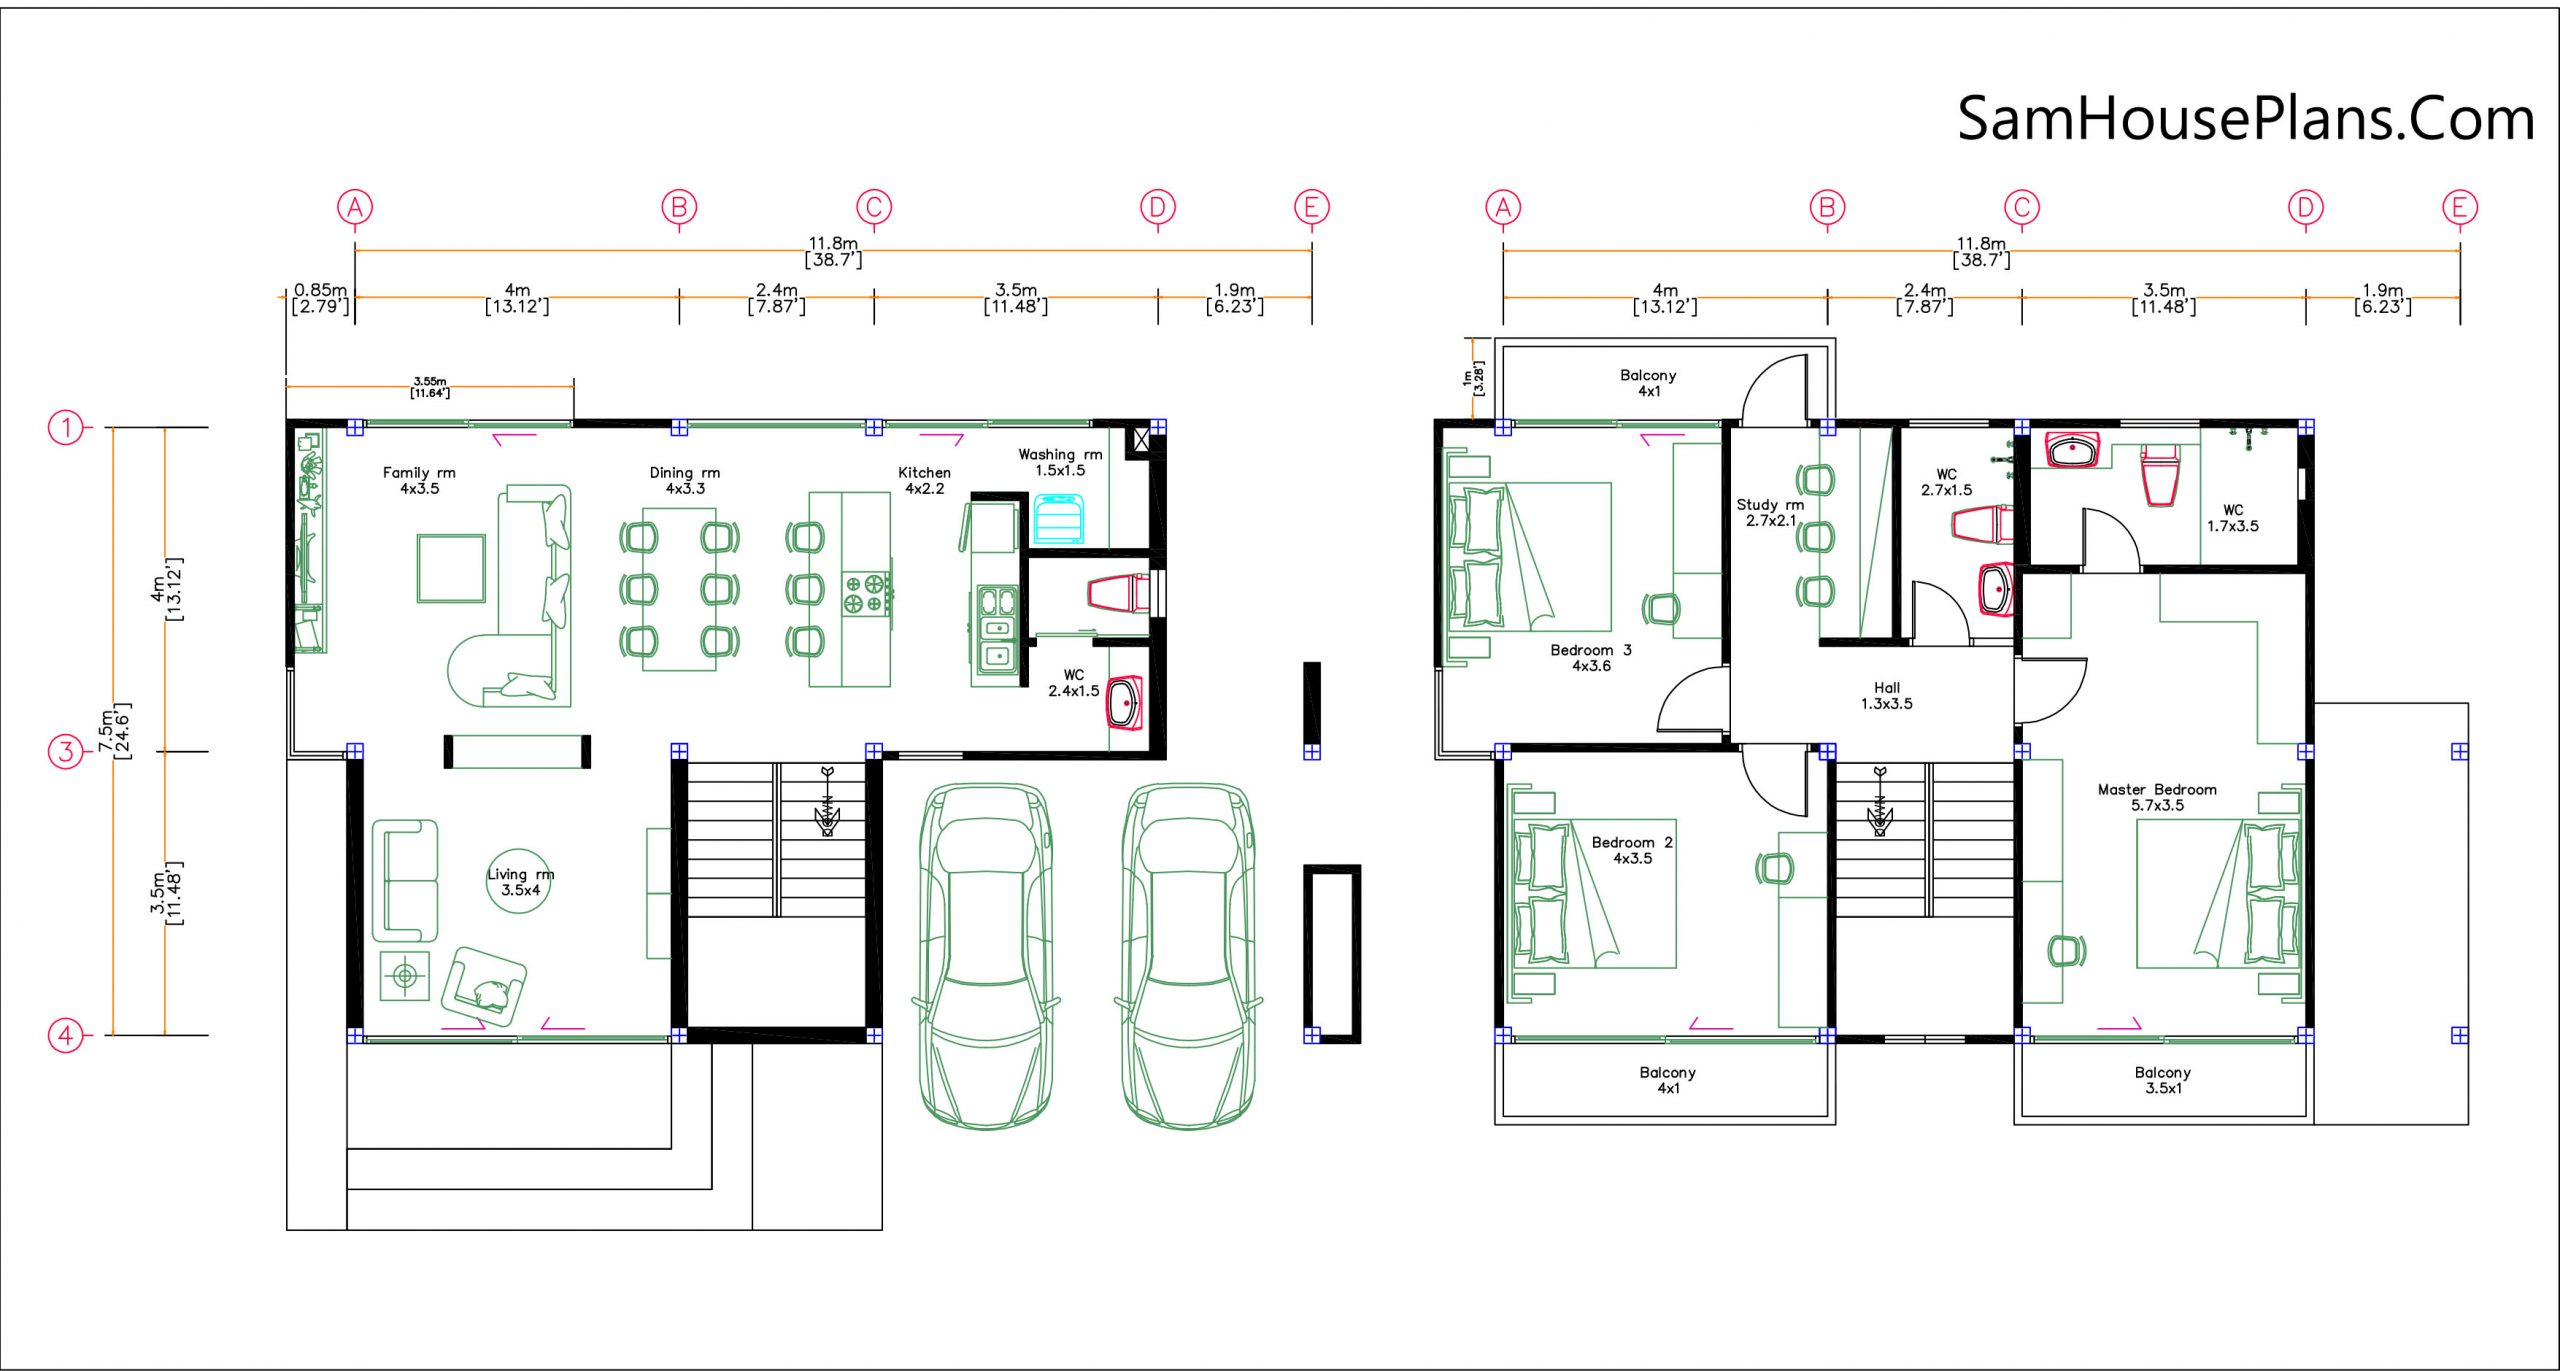 Small House Design 11.8x7.5 meters with 3 Beds Full PDF Plan Layout plan